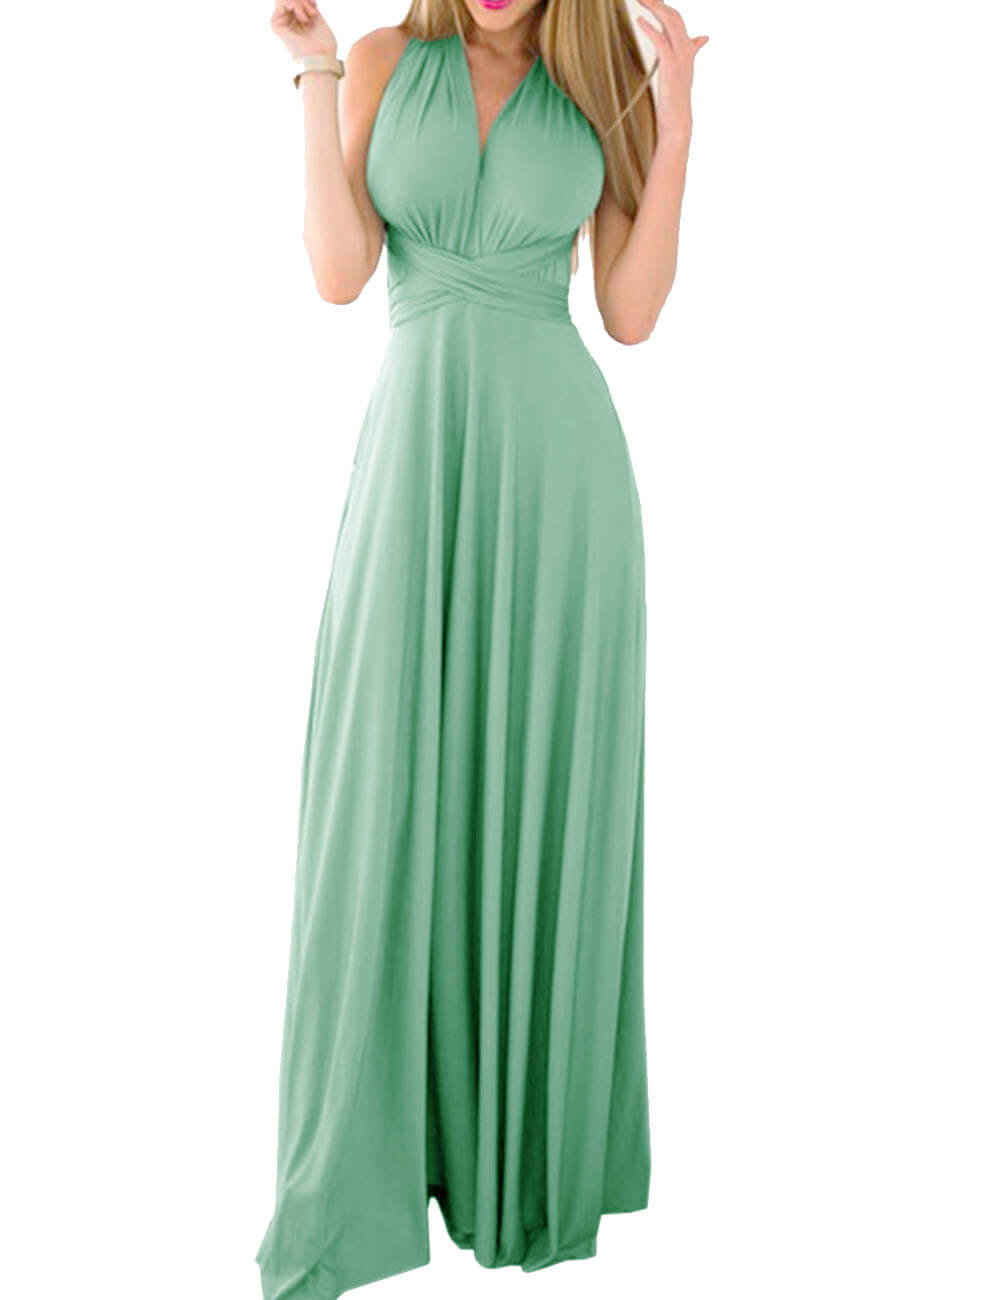 Women's Backless wedding  bridesmaid  Cocktail   Long Dress